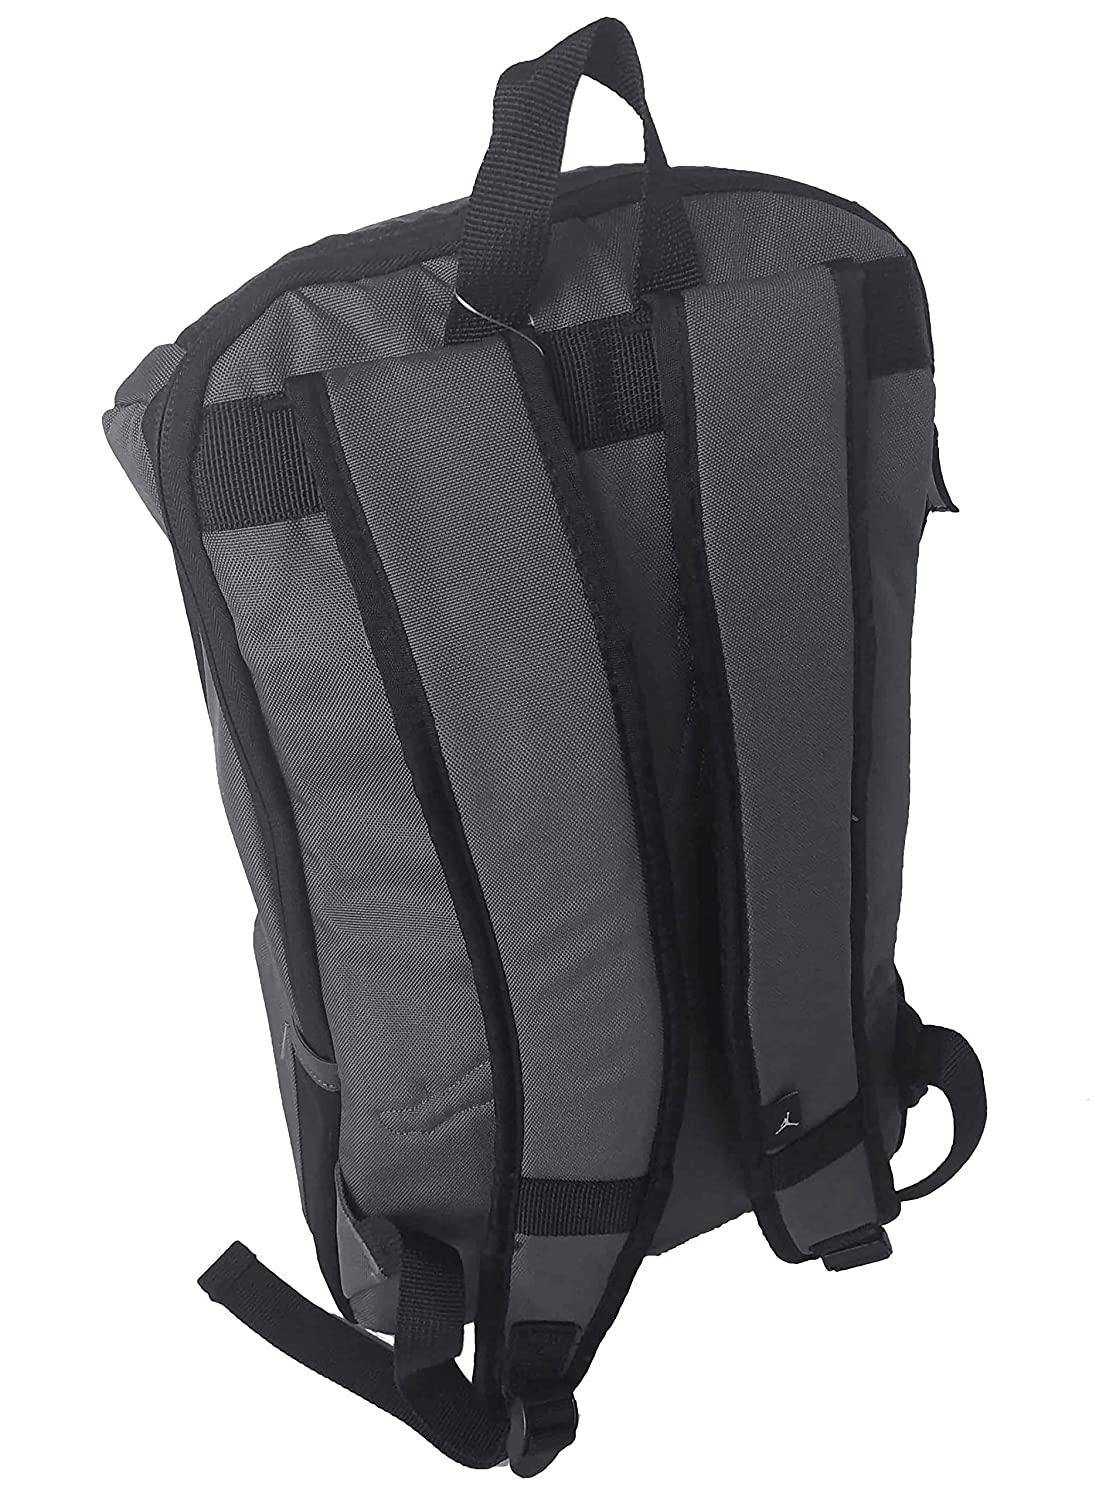 7c4c694404ee Nike Jordan Gray Unconscious Laptop Storage Pack Backpack (Gray Black)   Amazon.ca  Clothing   Accessories